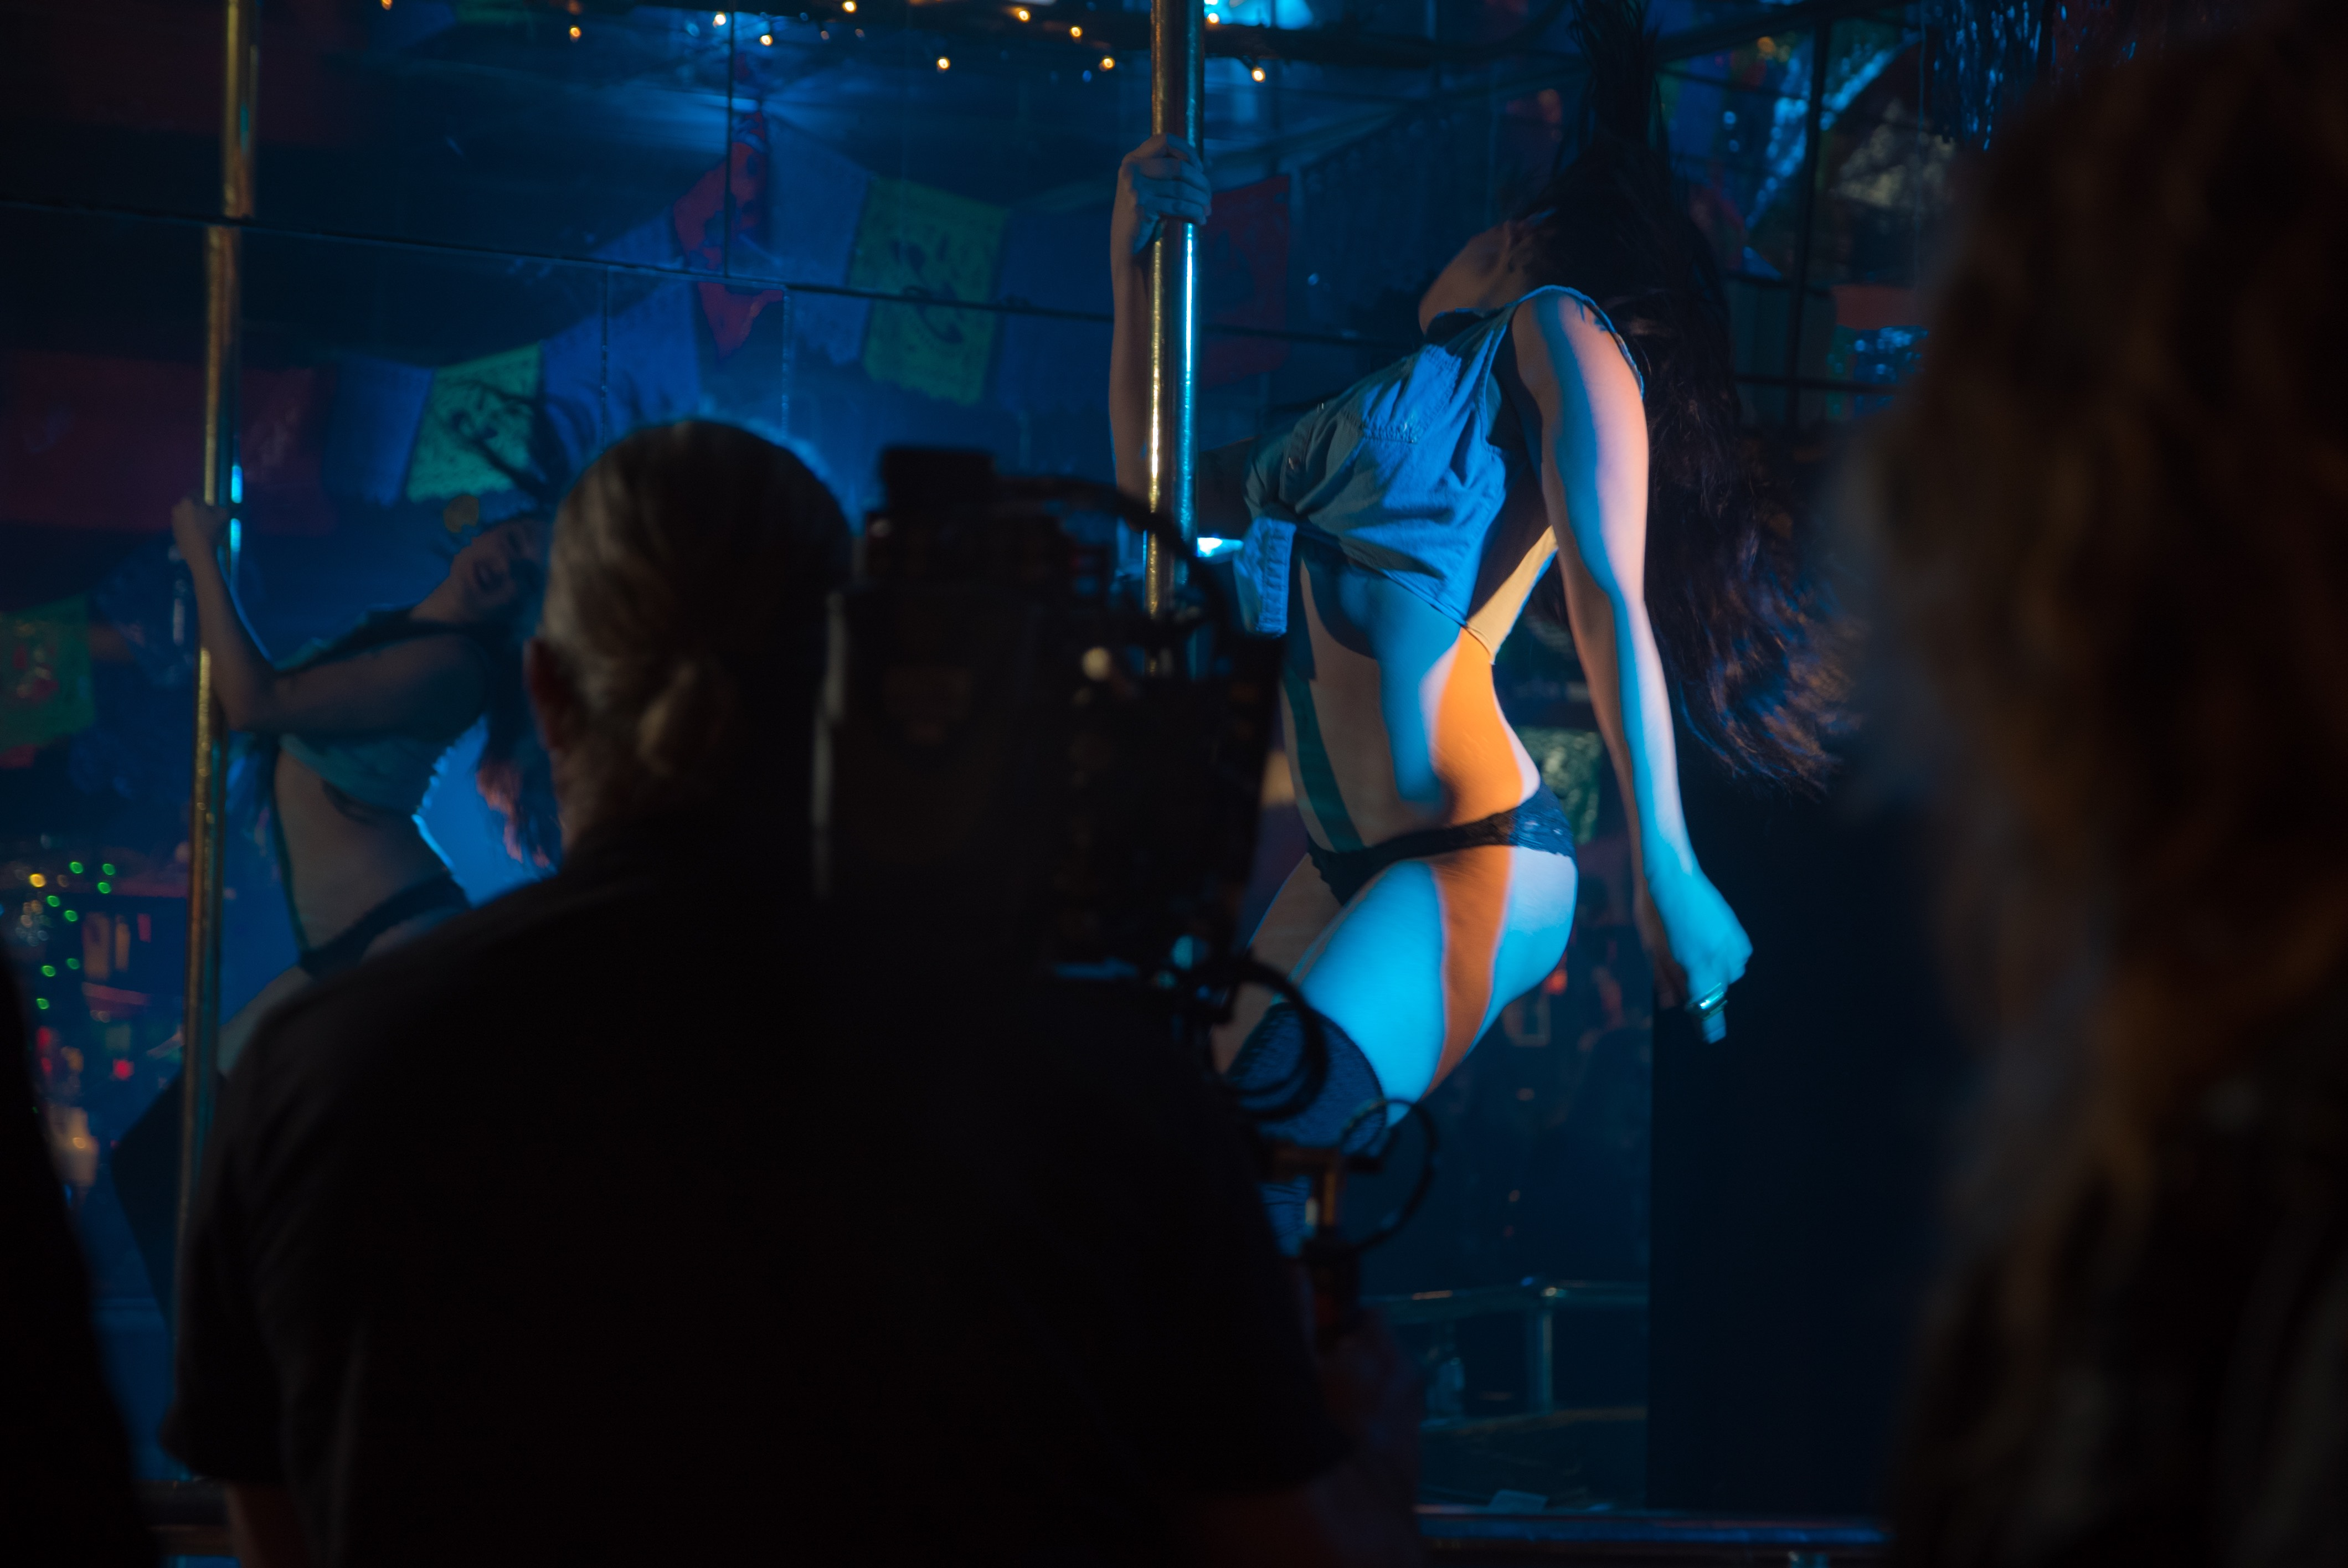 On the set of Mexico - Video shoot